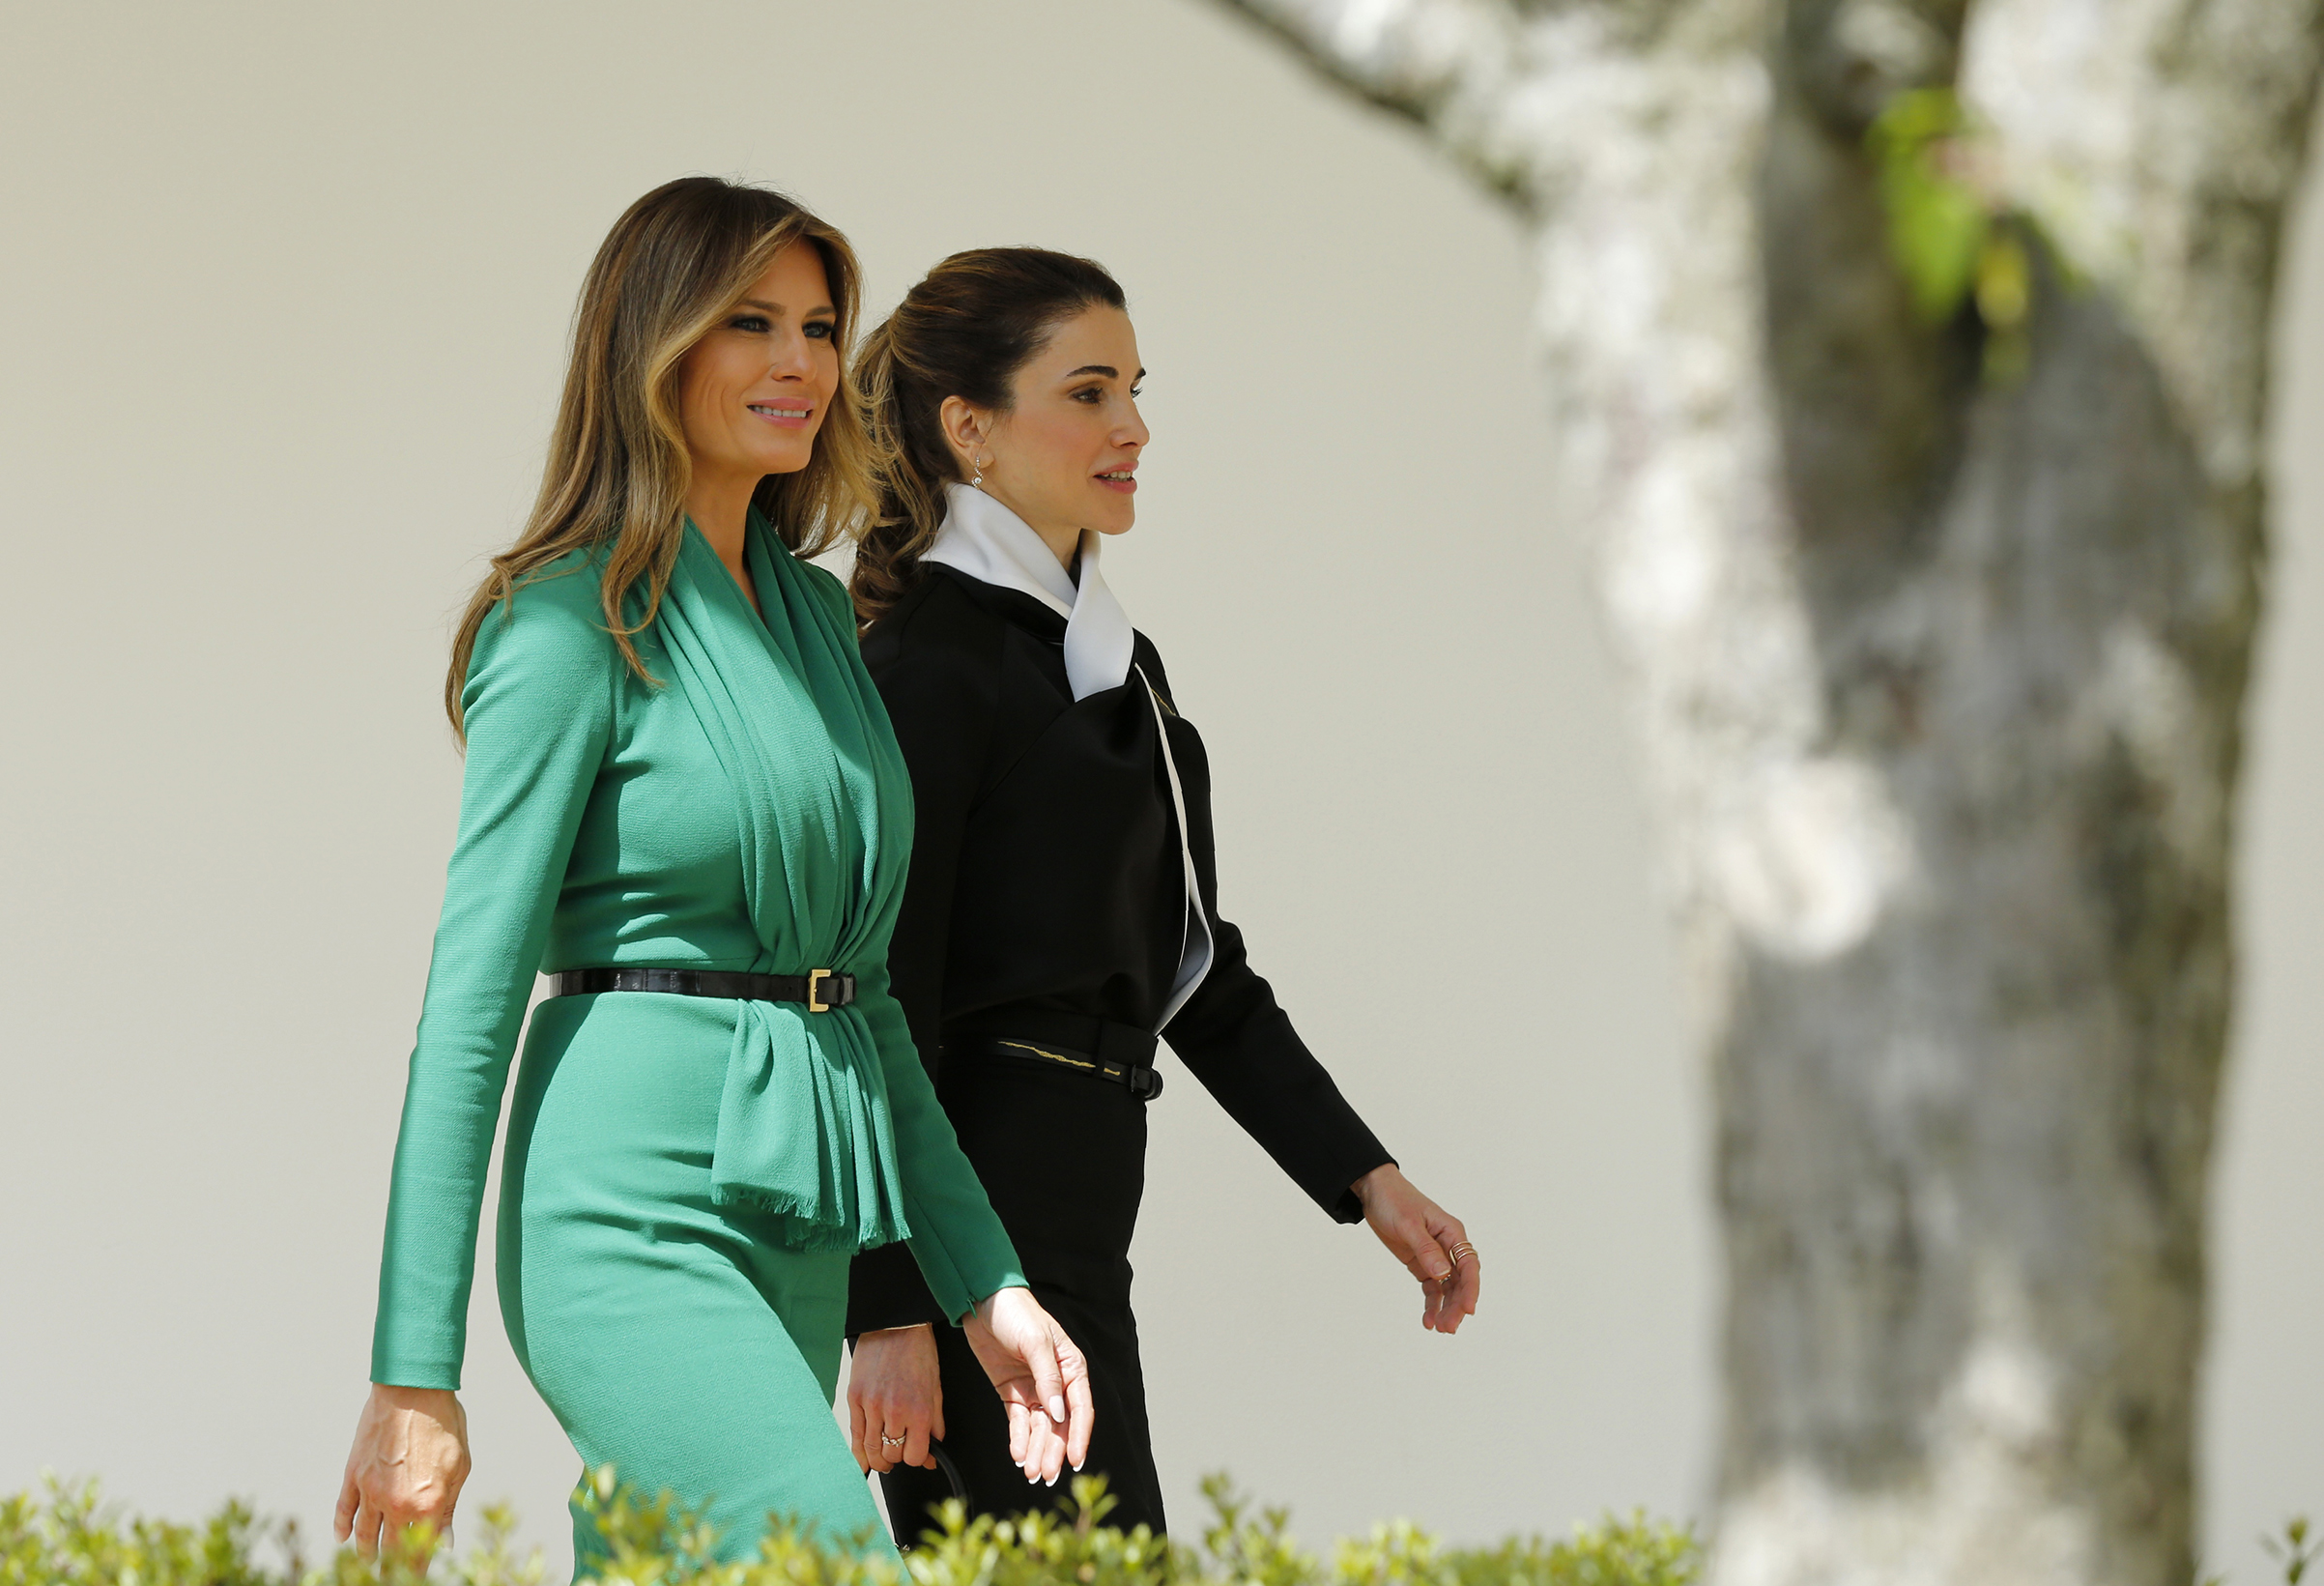 First lady Melania Trump (L) wearing emerald green dress by Hervé Pierre walks down the White House colonnade with Jordan's Queen Rania after U.S. President Donald Trump and Jordan's King Abdullah II held a joint news conference in the Rose Garden at the White House in Washington, D.C., April 5, 2017.